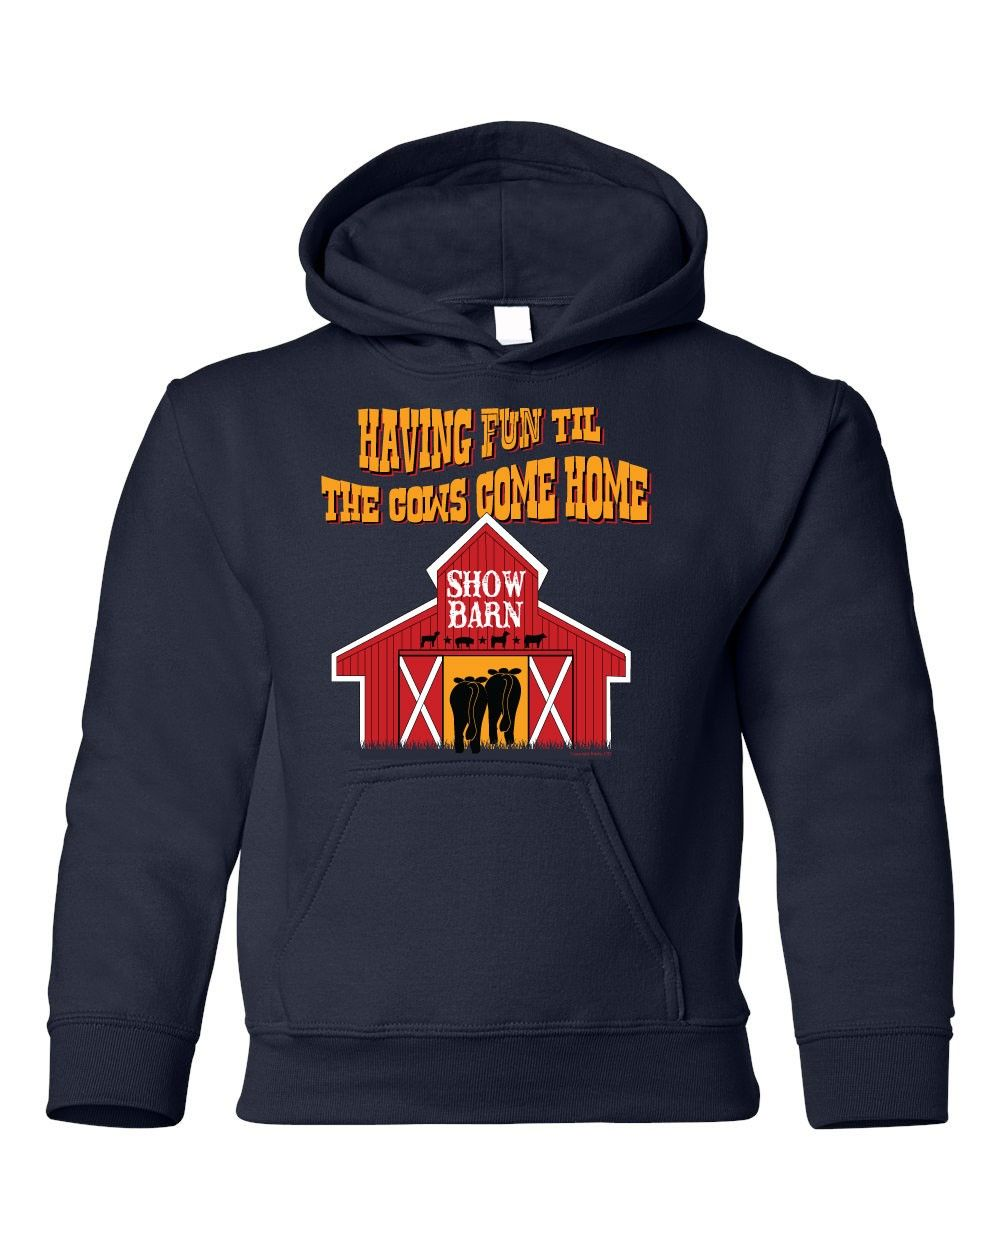 aa8a19a2bd Livestock Showgirls - Til the Cows Come Home Youth Hoodie, $24.99 (http:/